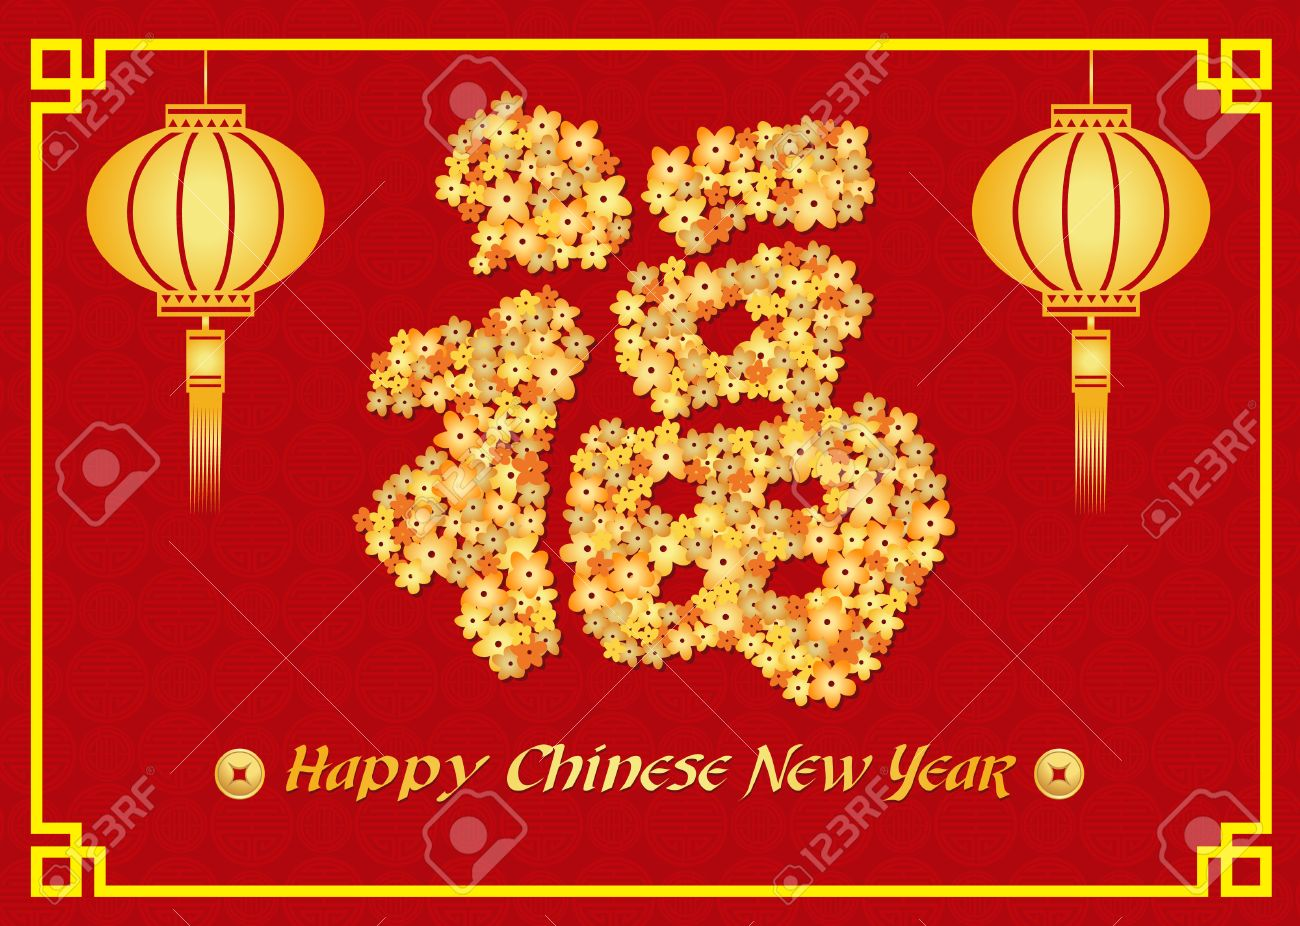 Happy Chinese New Year Card With Lanterns And Gold Flower China ...